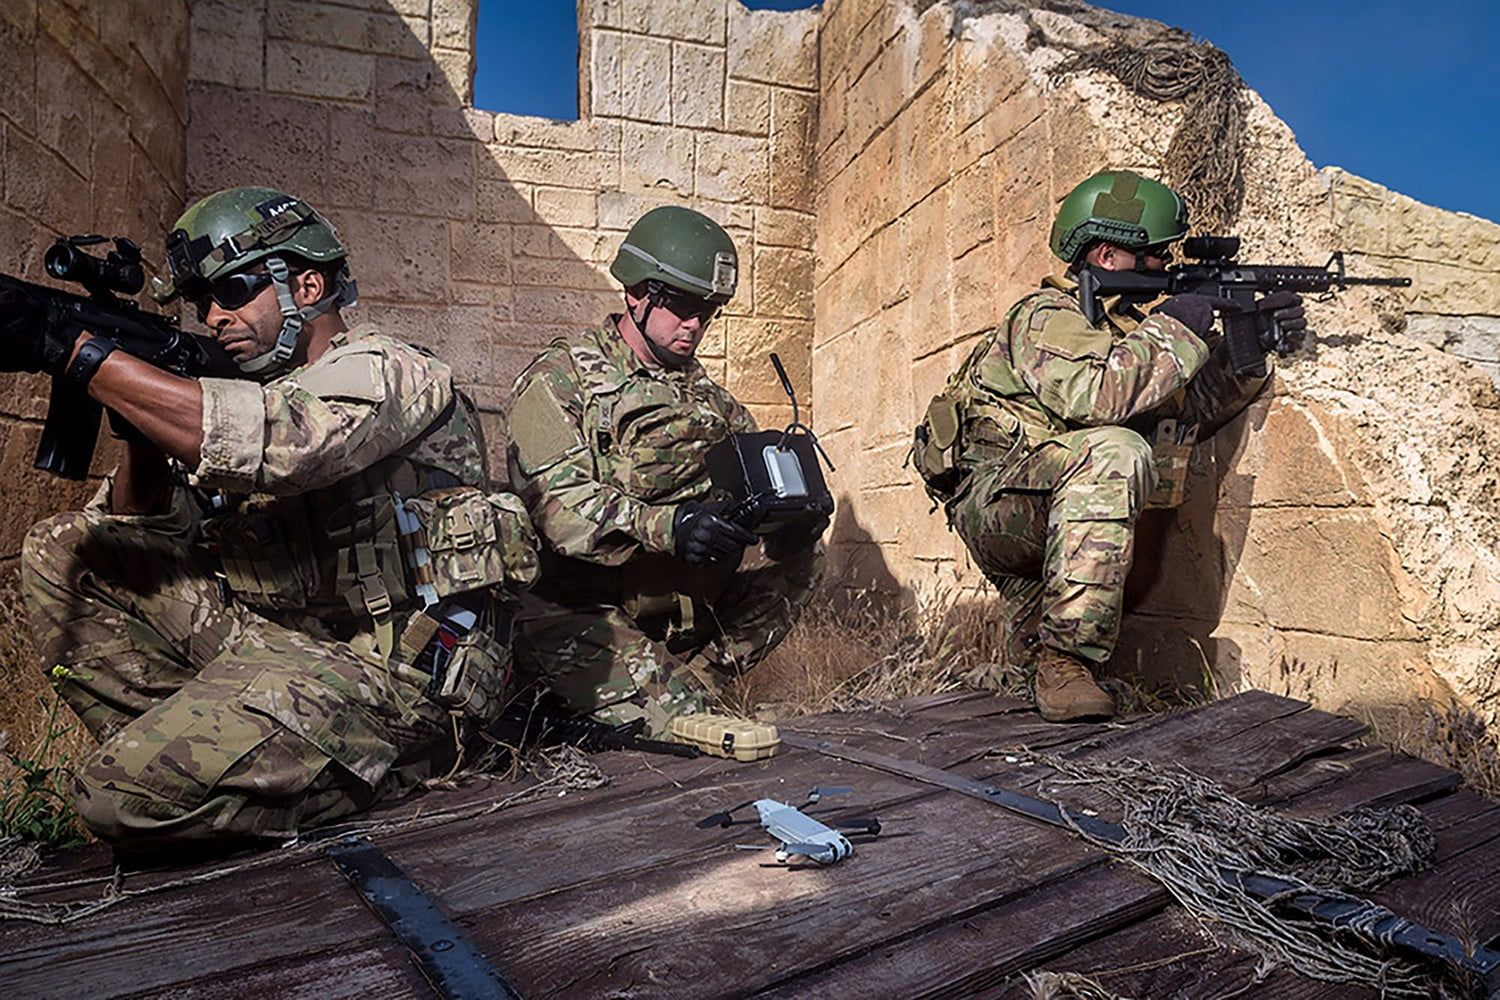 Pocket Sized Personal Drone Gives Soldiers An Extra Pair Of Eyes